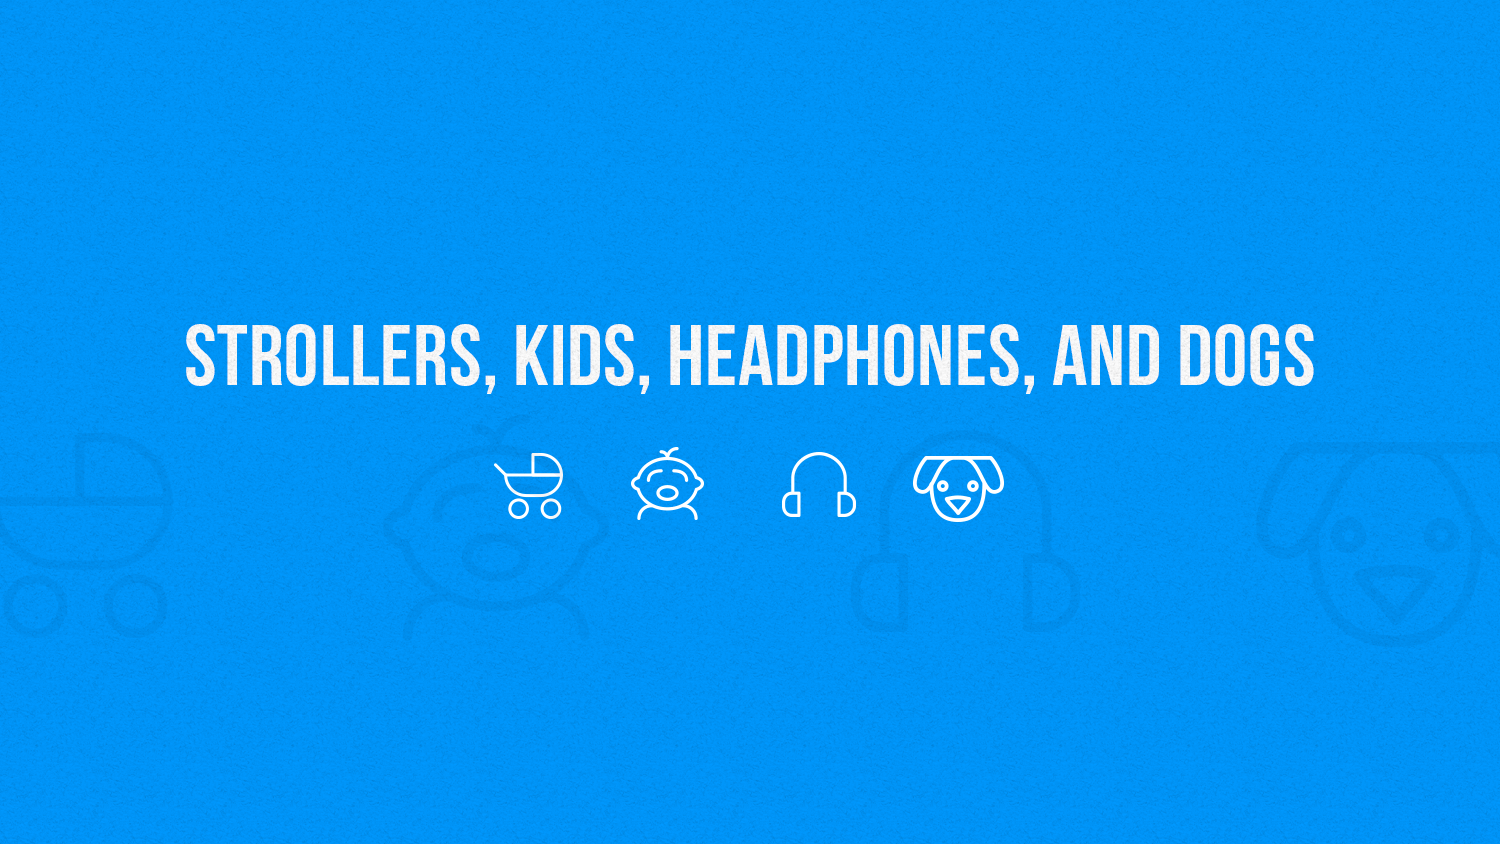 Stroller, baby, headphones and dog icons